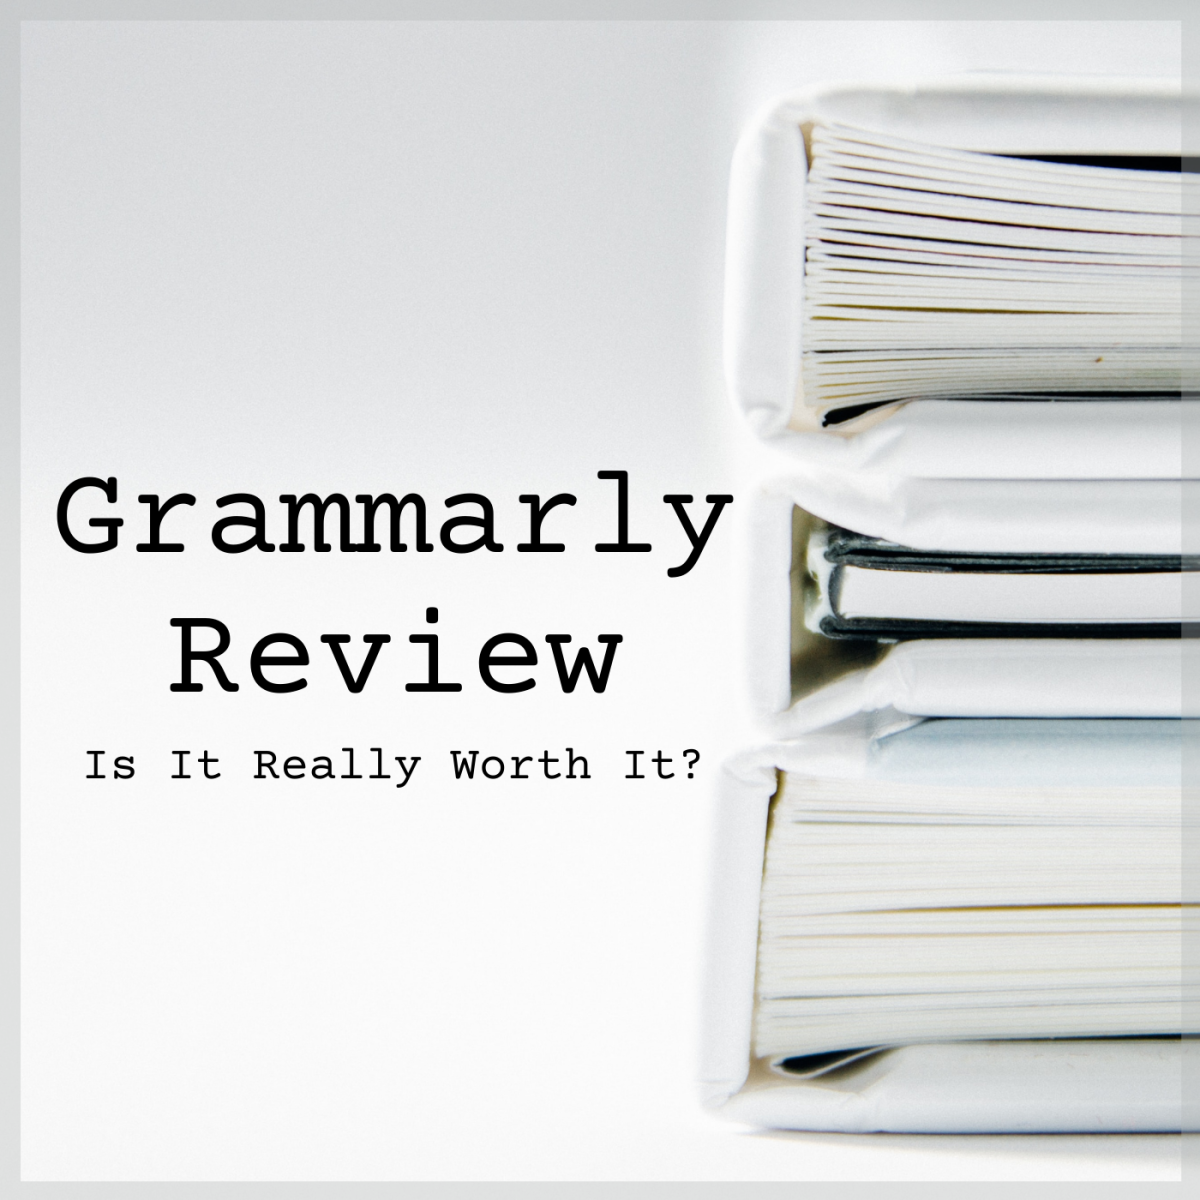 Is Grammarly everything that it claims to be? And will it really help you with your writing?